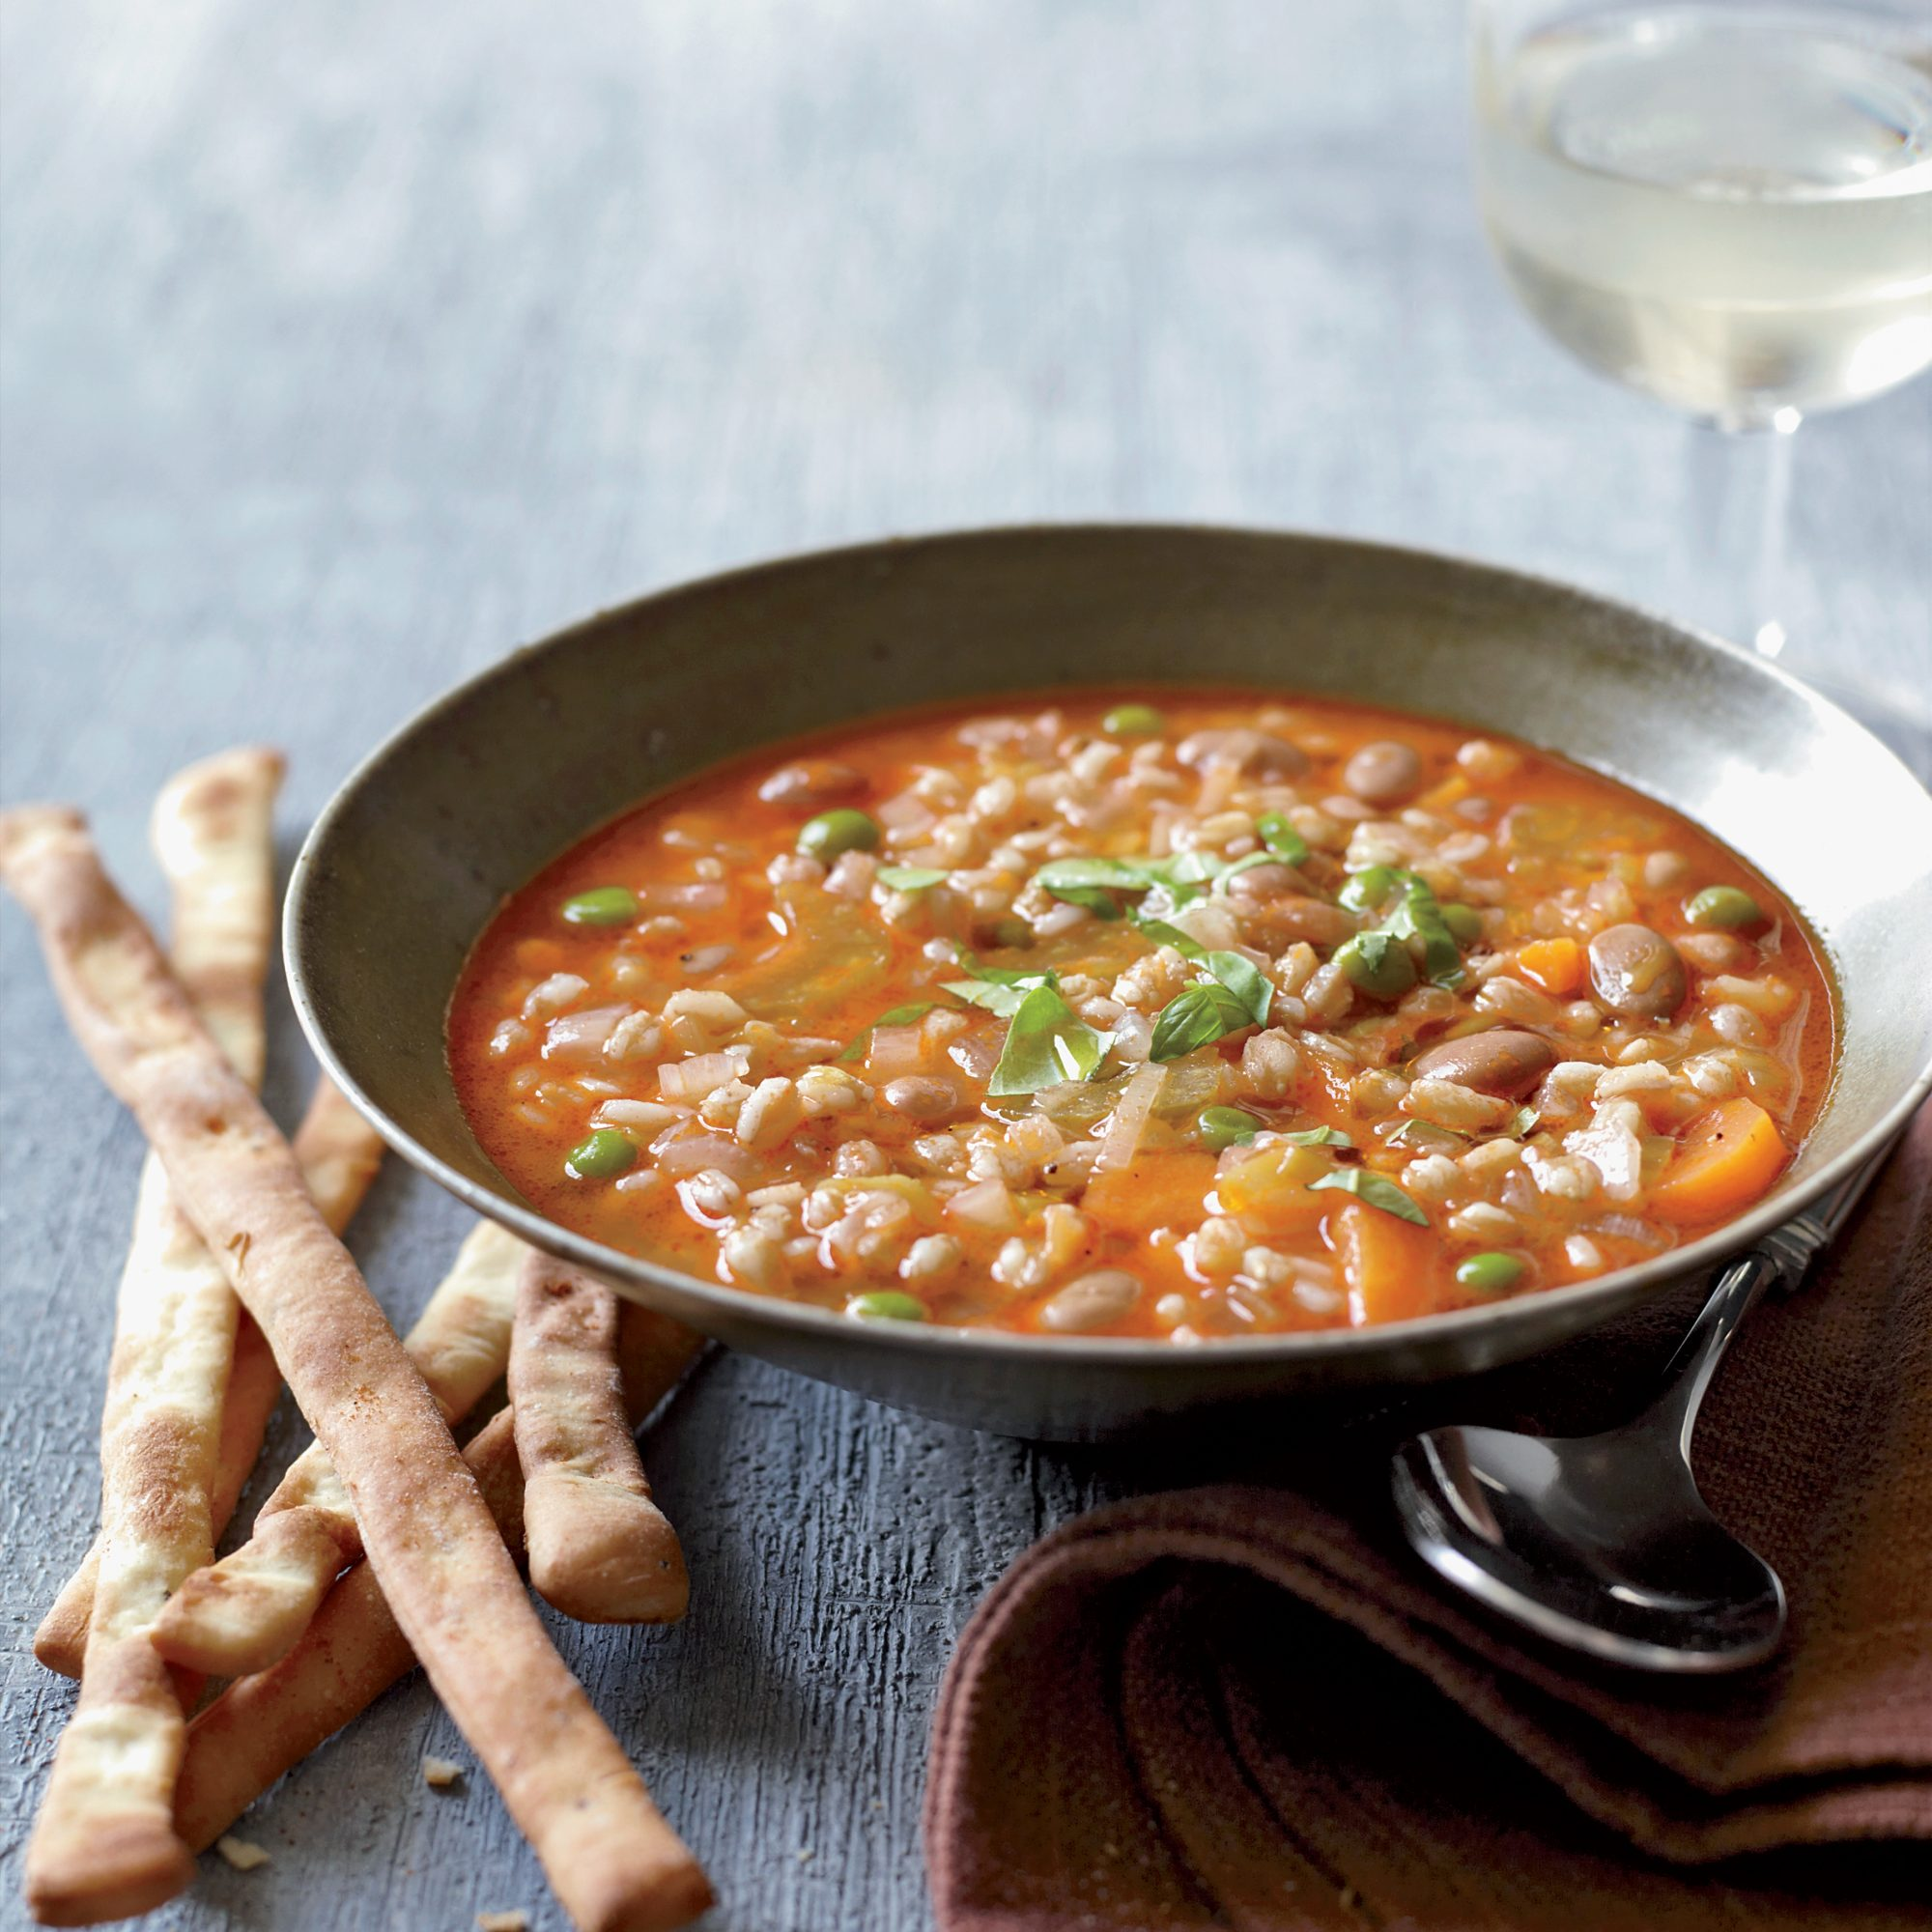 Put in the Slow Cooker and let it do what it does best. A rich soup for Lent.